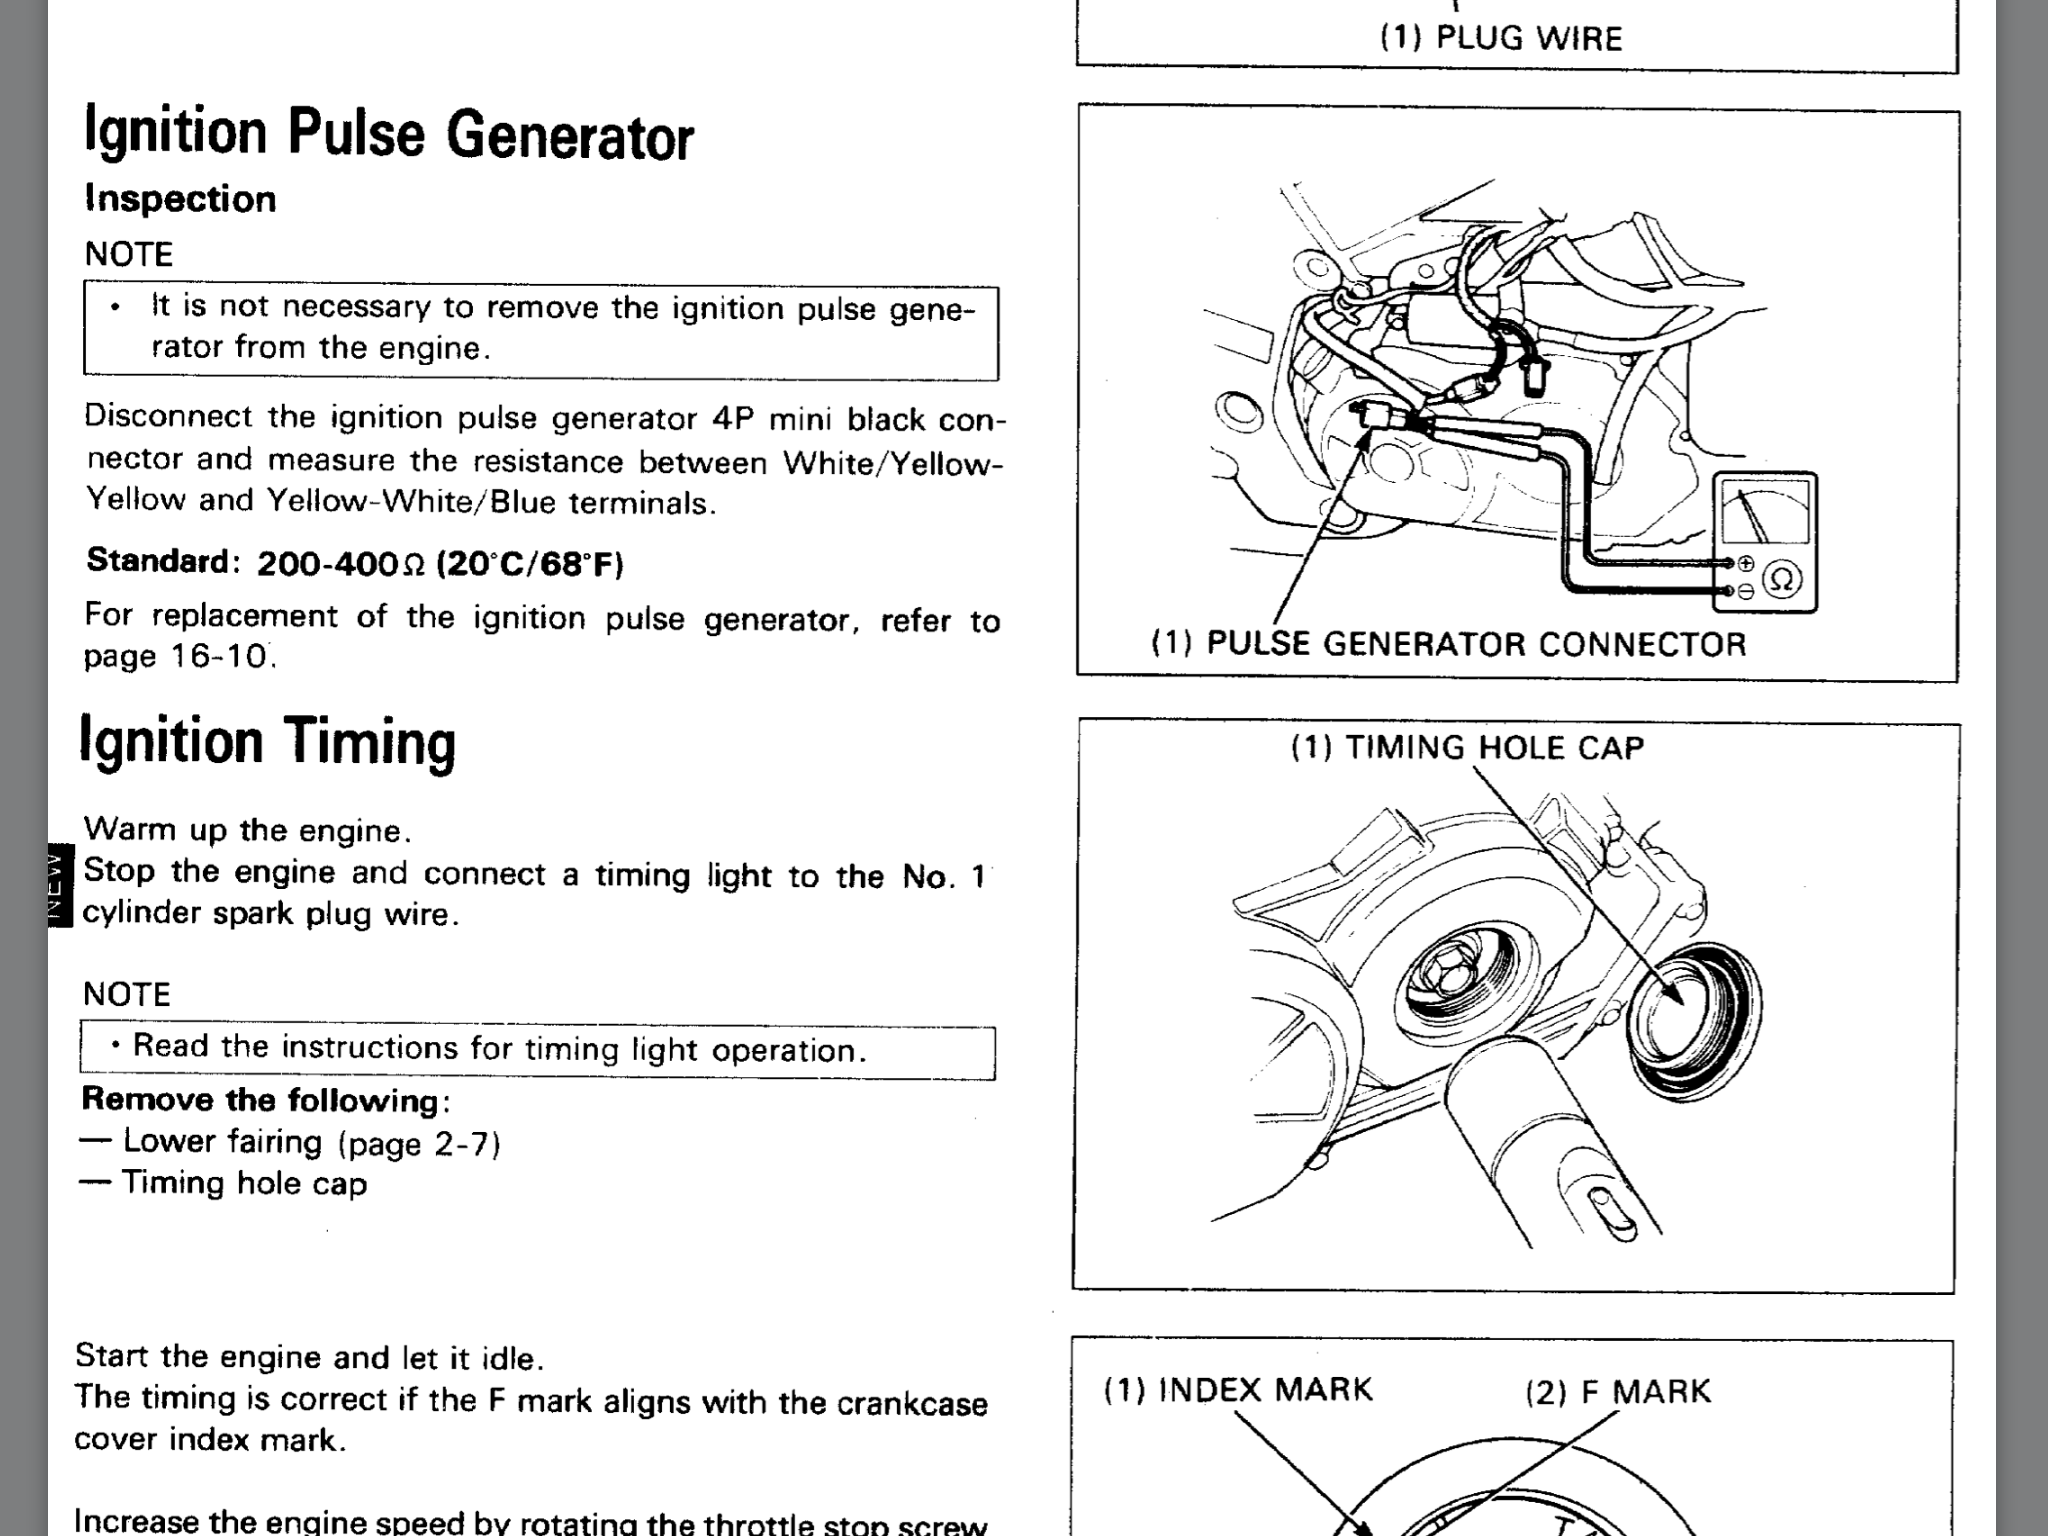 Pulse Generator Confusion - Electrical